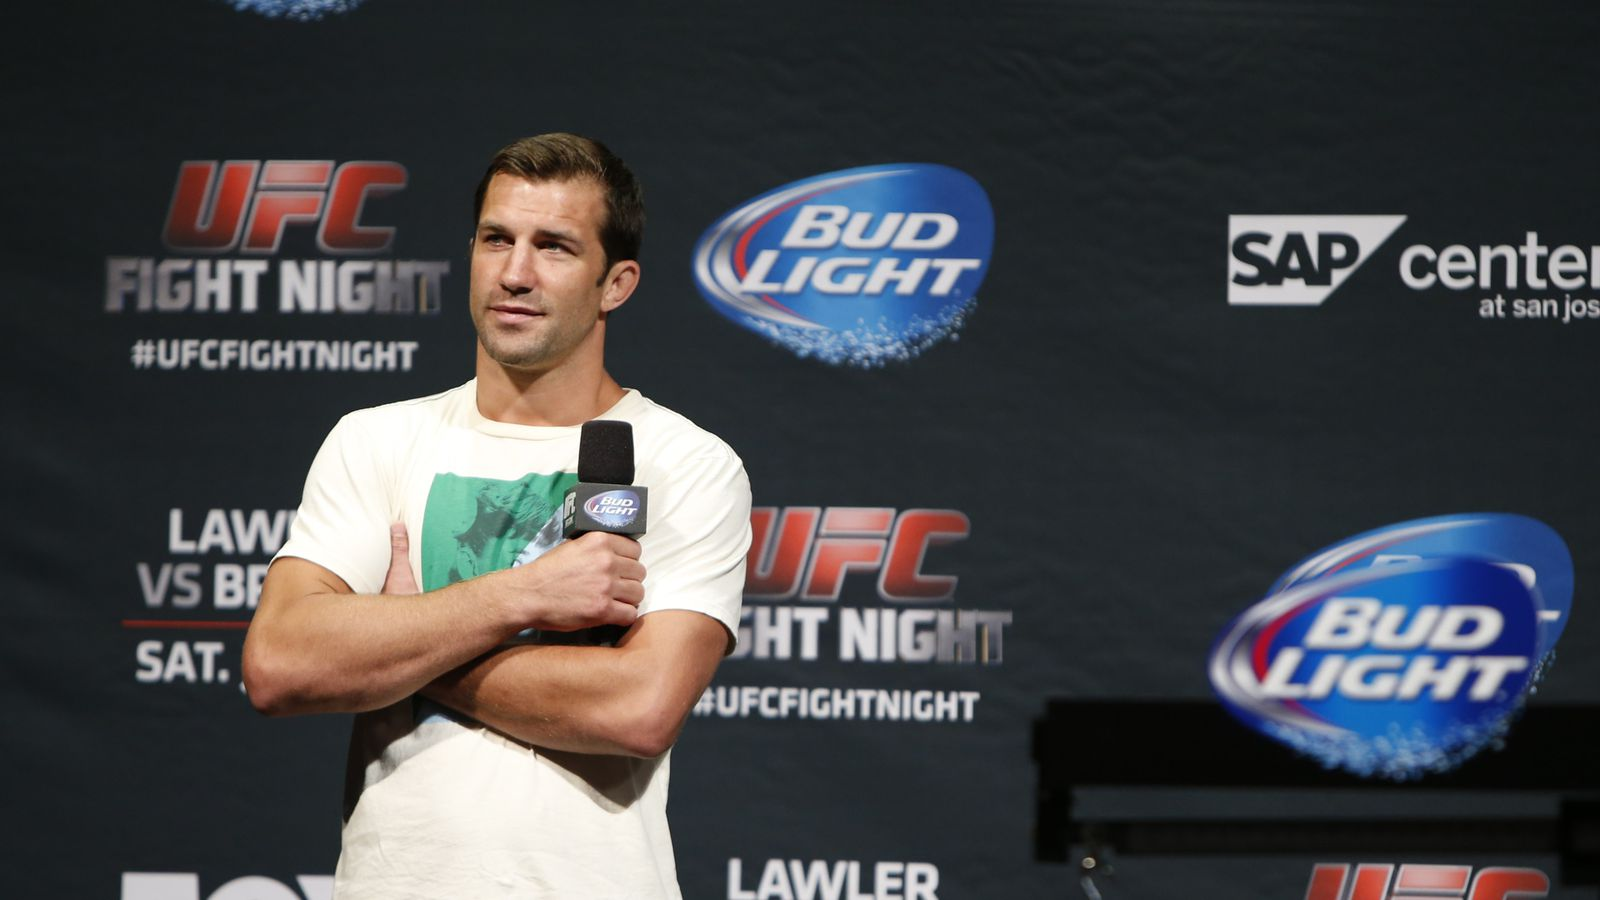 Morning Report: Luke Rockhold calls out Fabricio Werdum to settle ?old beef from Strikeforce'